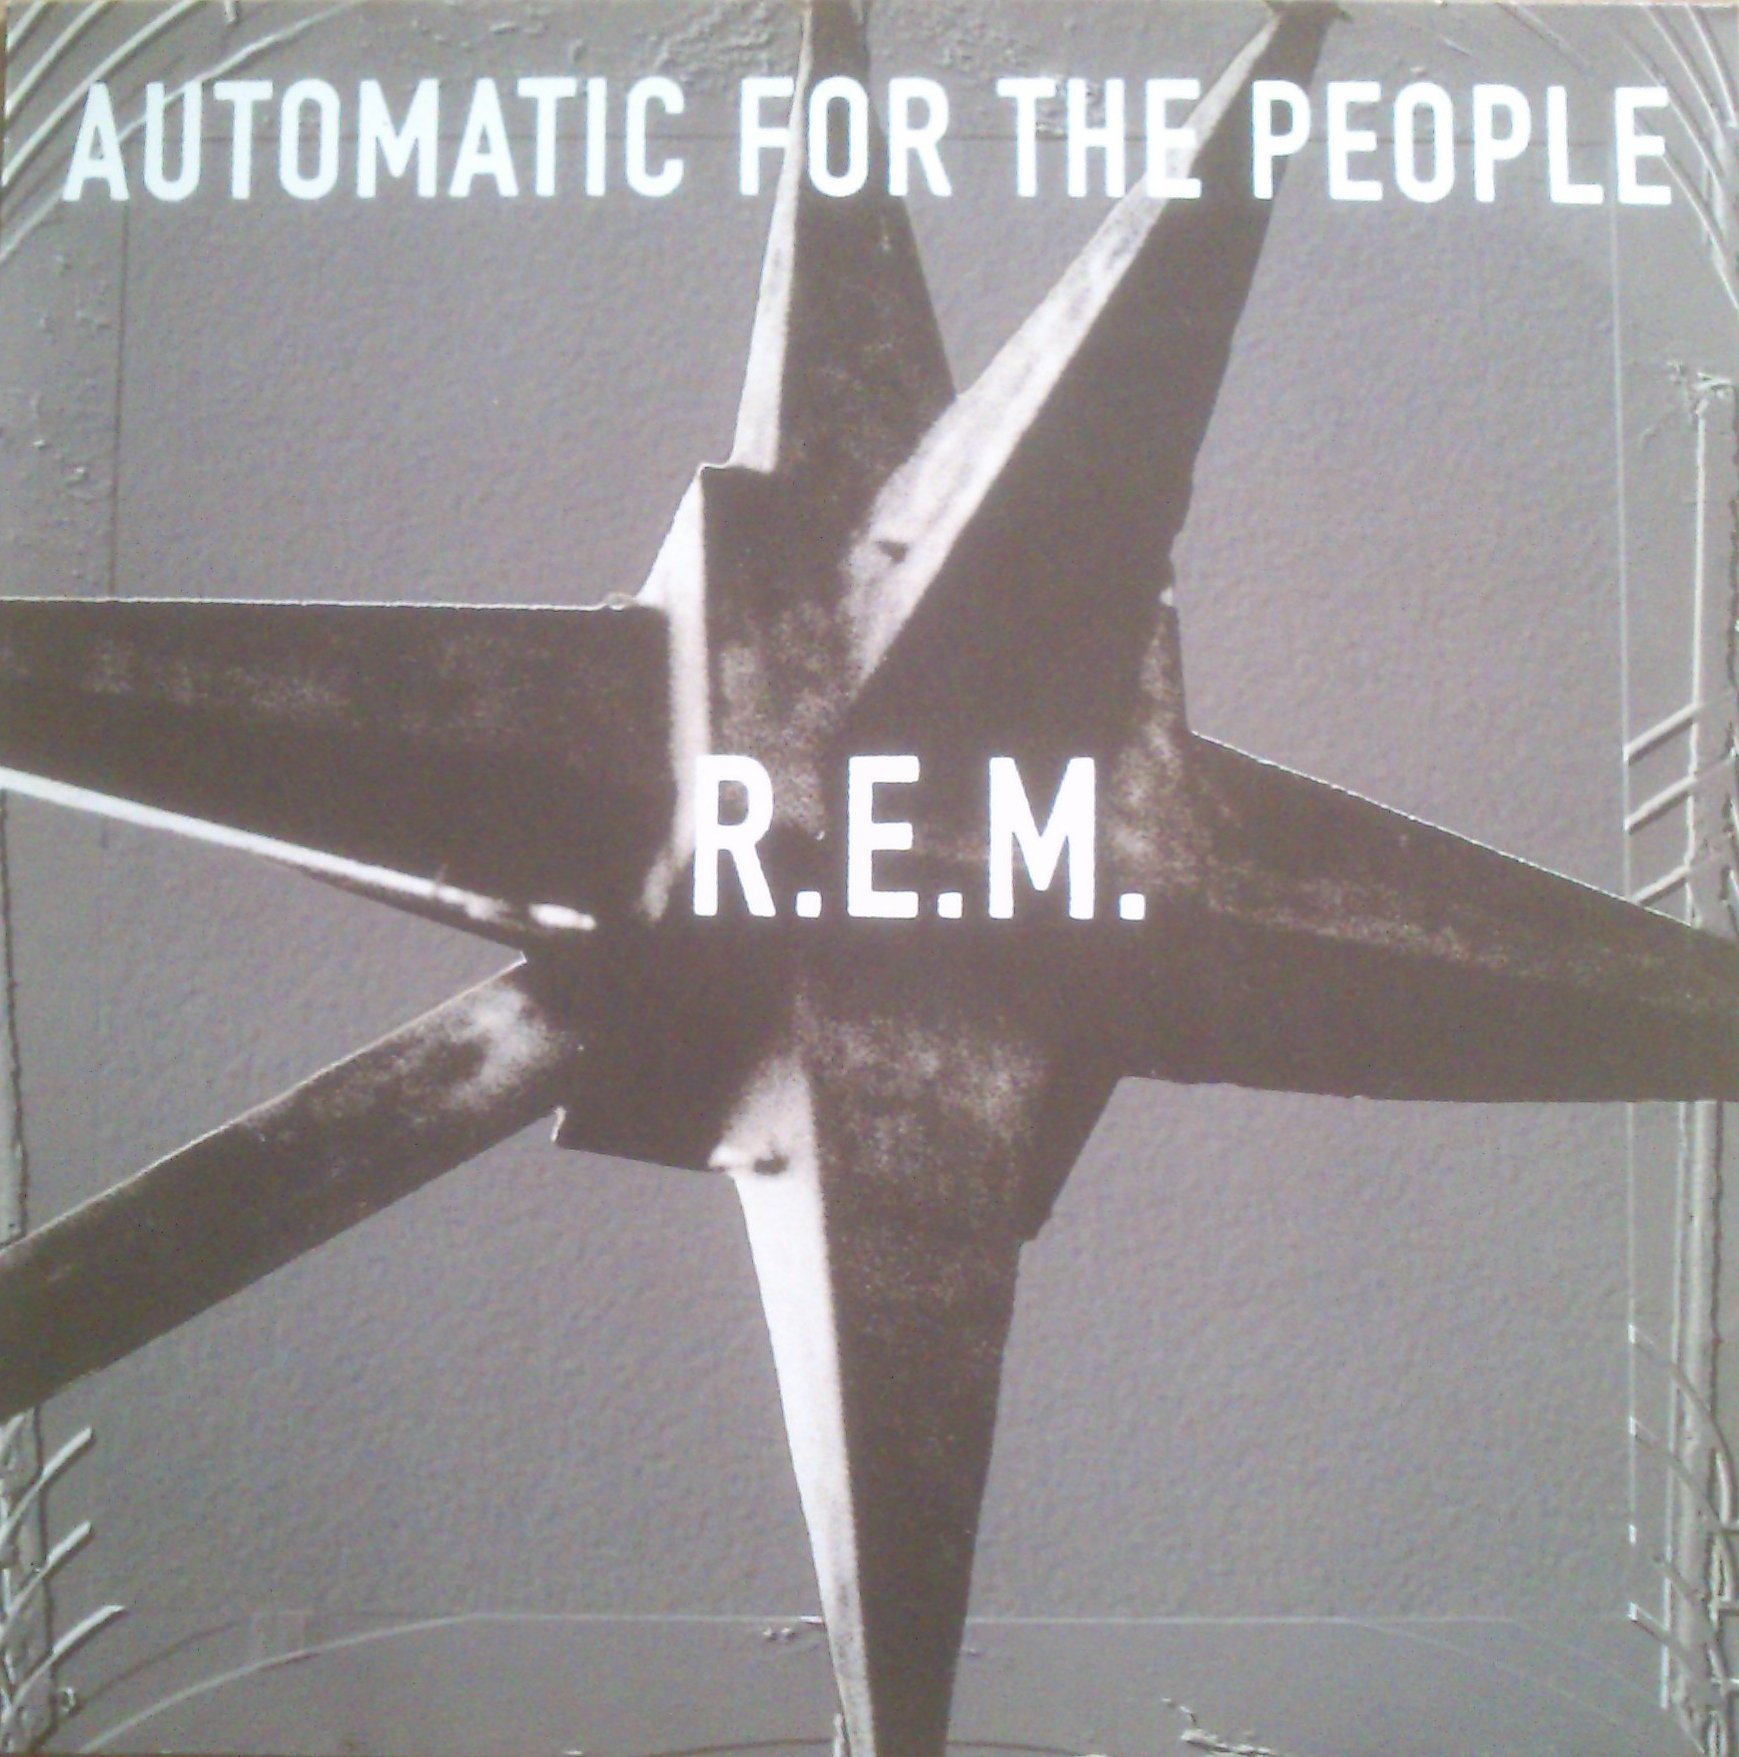 download R.E.M.Automatic.For.The.People.1992.2017.COMPLETE.MBLURAY-MIDDLE